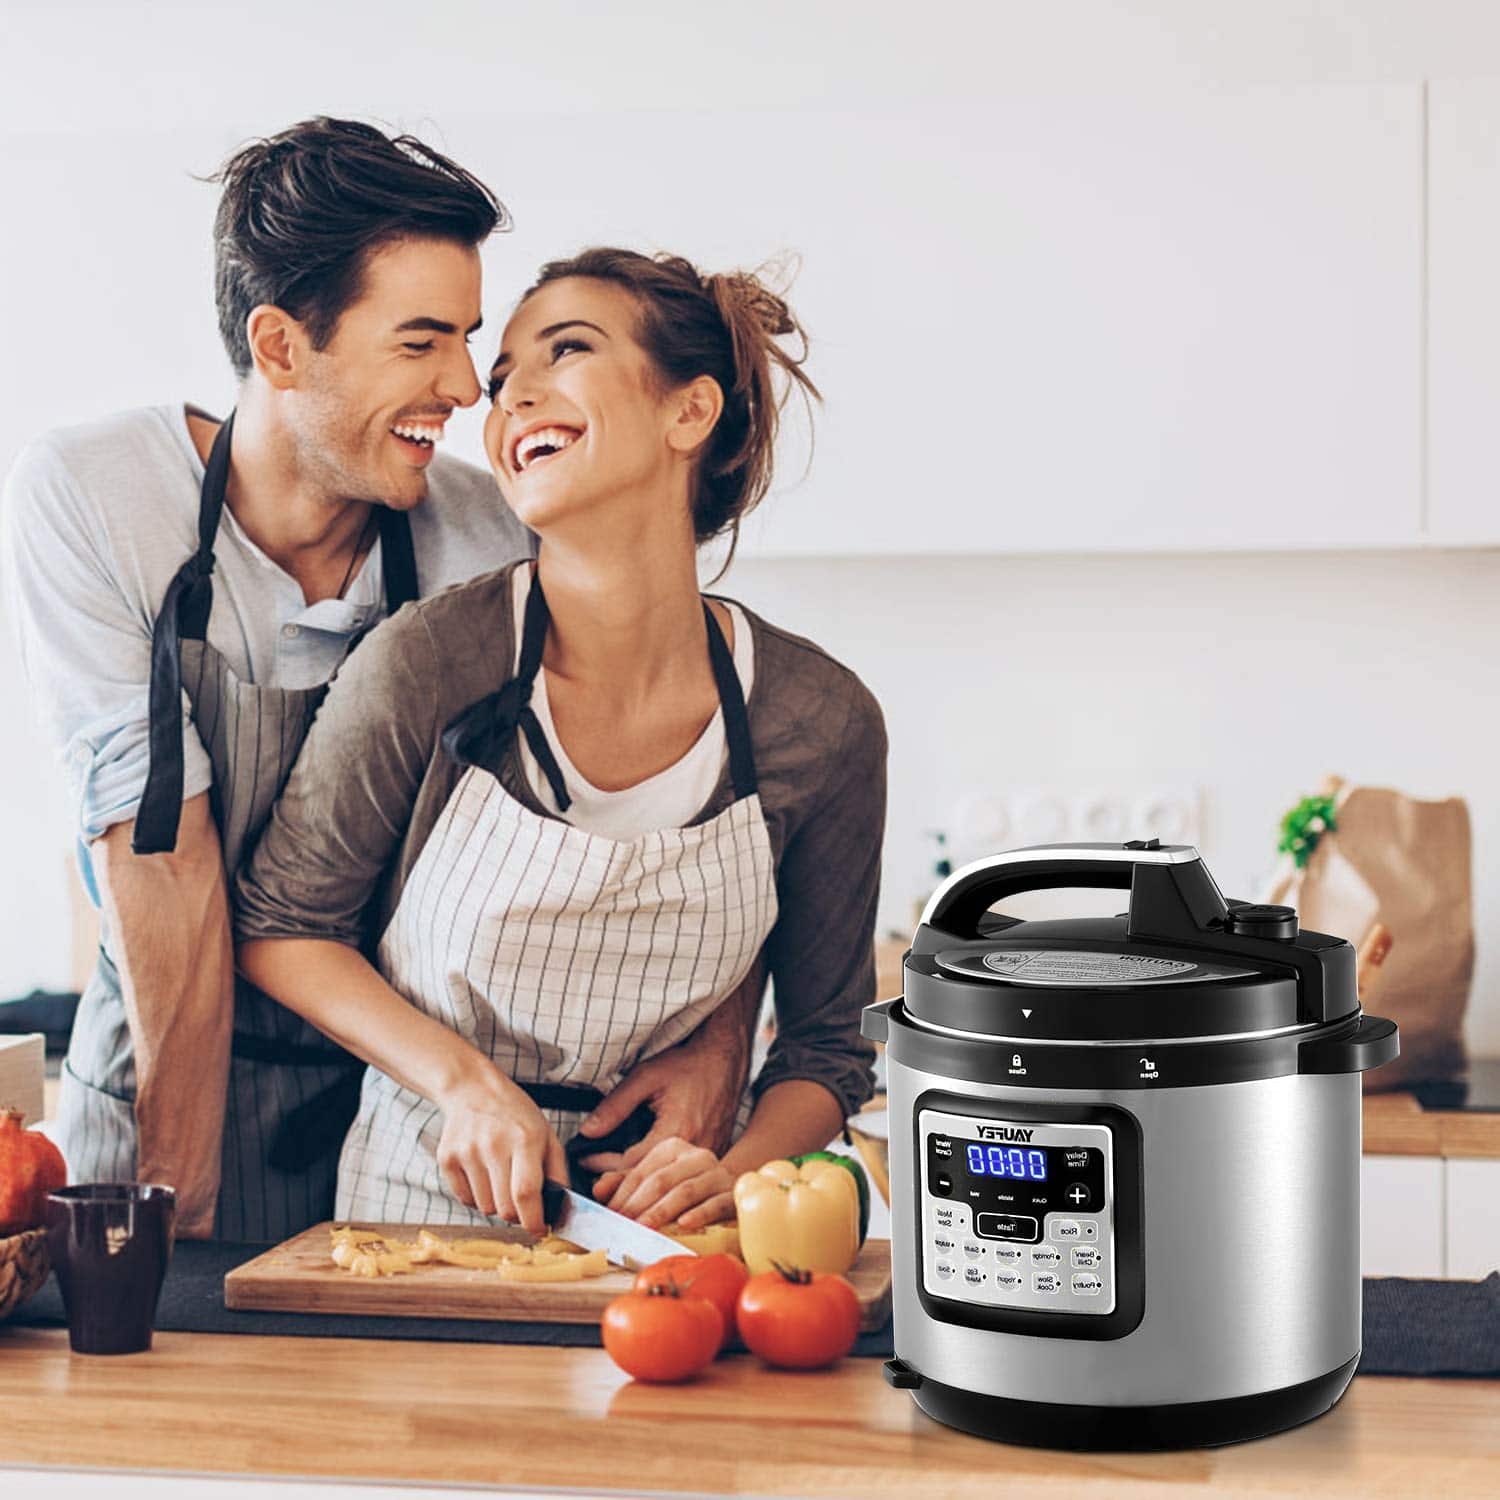 Top 10 Best Programmable Pressure Cookers in 2020 Reviews